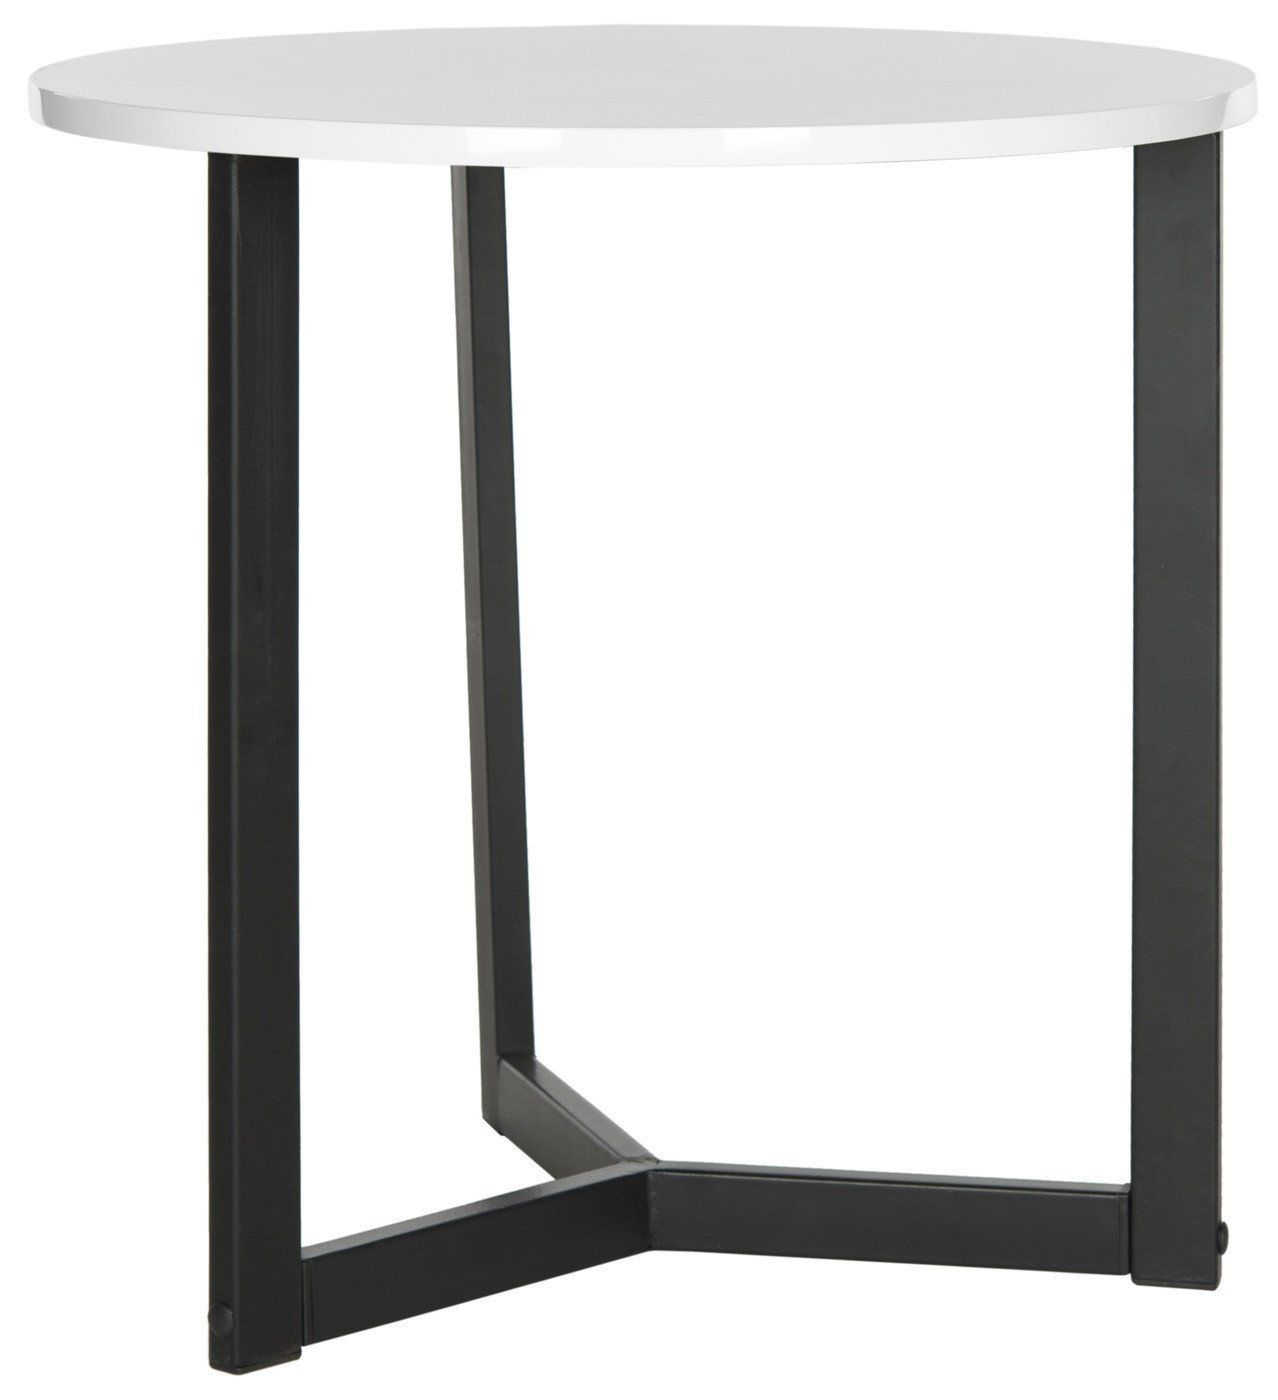 tables contemporary furniture side safavieh ballard lacquer end table white black accent hamilton bay patio kidney bean coffee retro vintage sofa inch high beach themed and sets